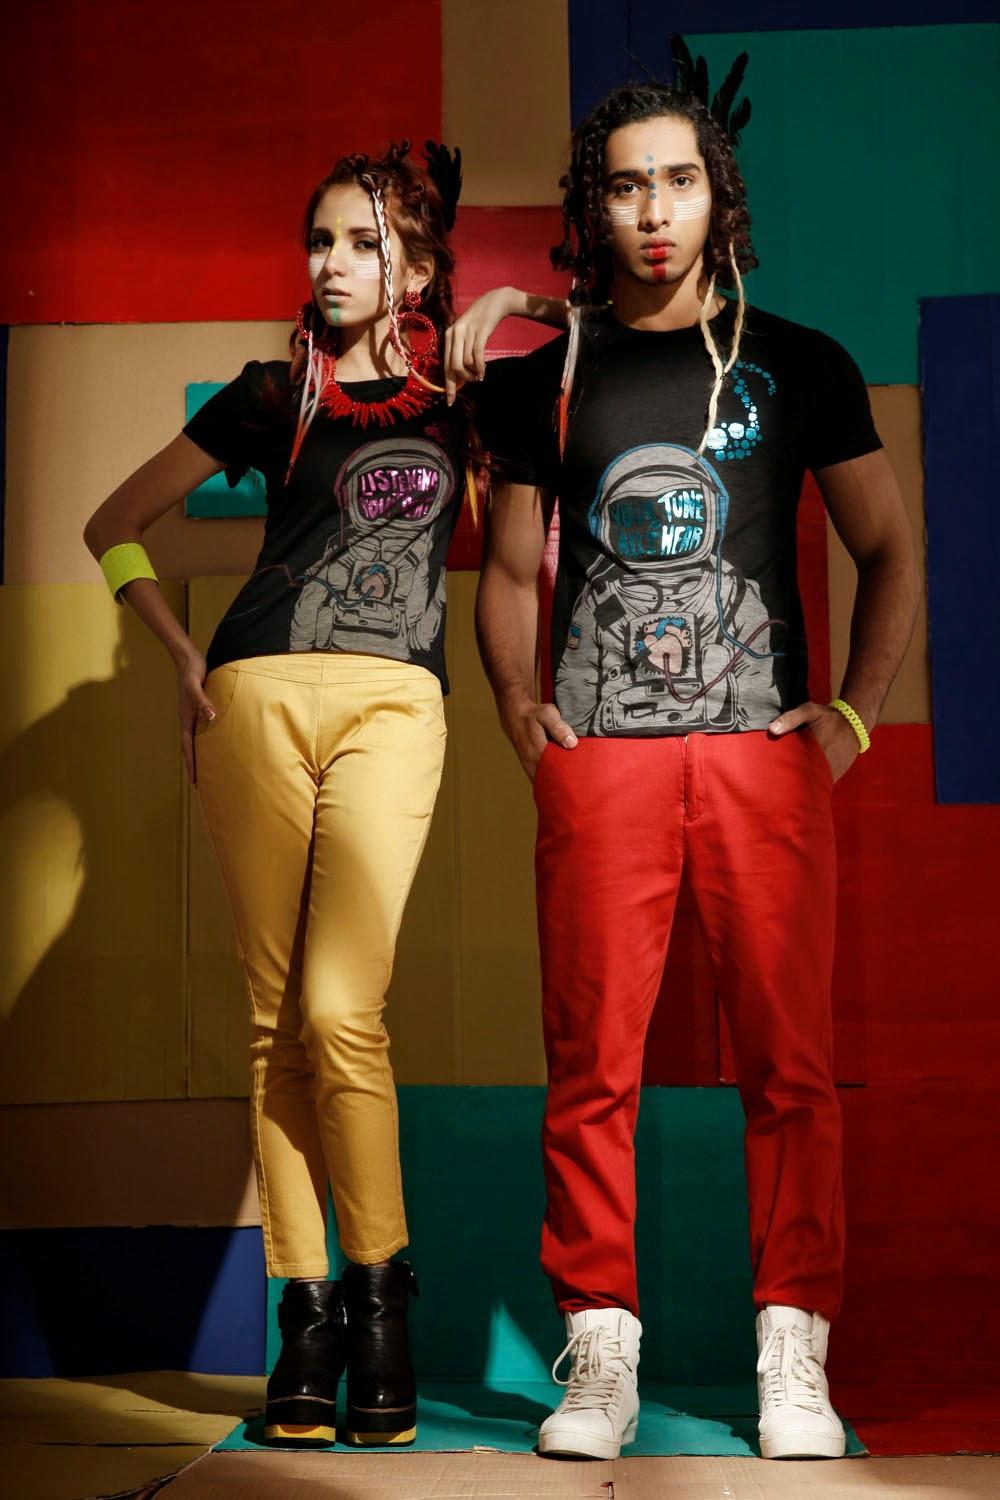 Solo's His & Hers Graphic Tee Design Winners